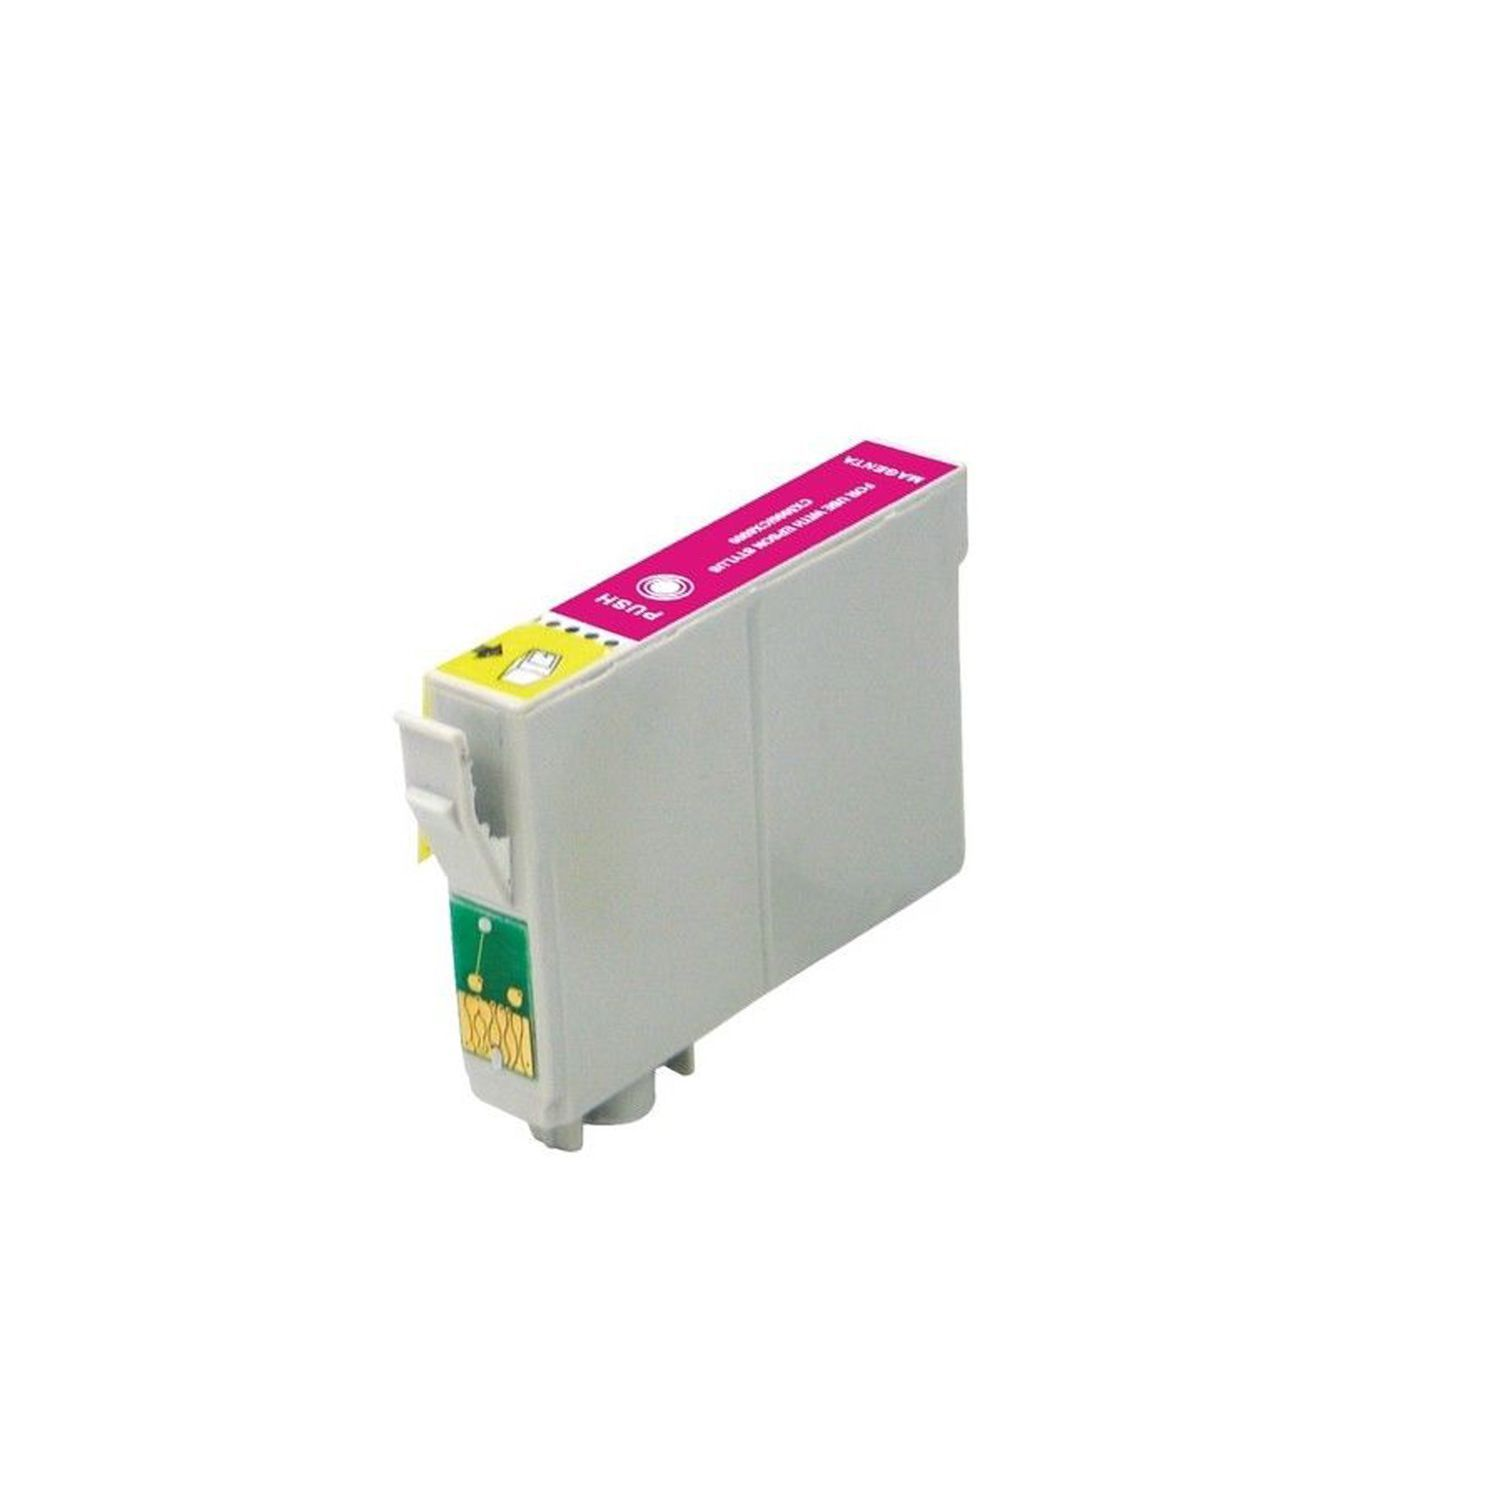 1PK T078320 Compatible Ink Cartridge for Epson Stylus Photo